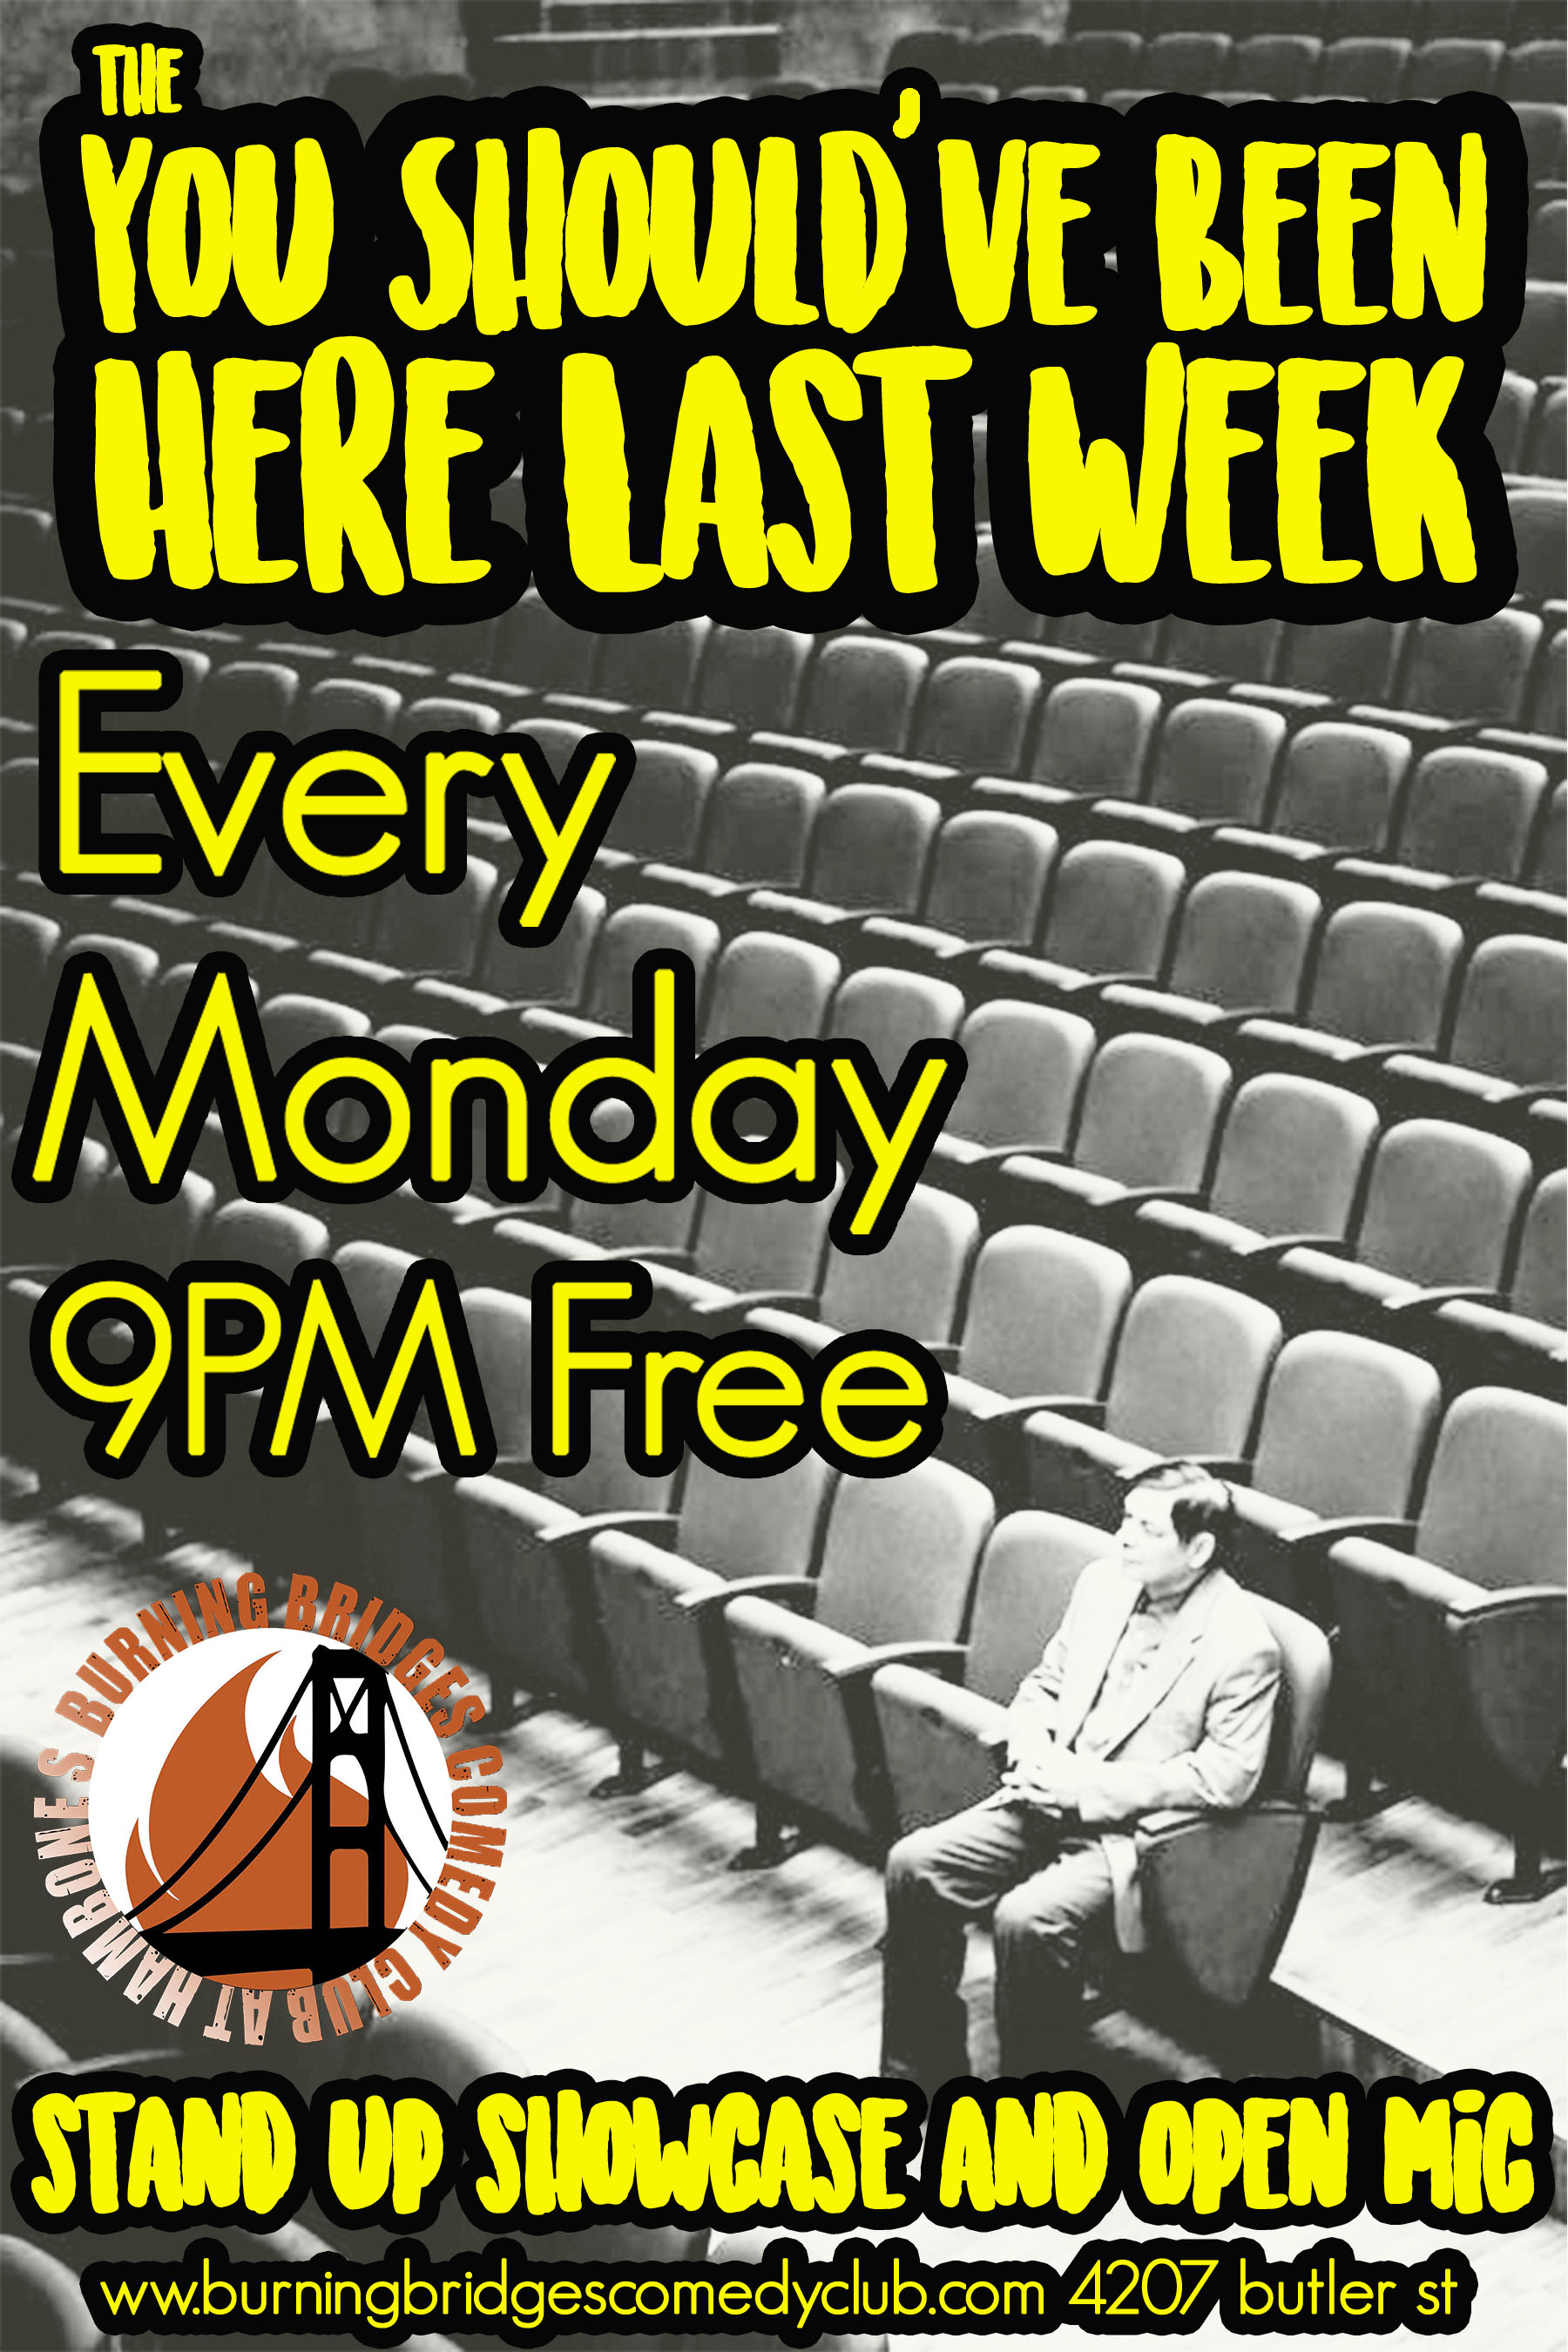 You Should've Been Here Last Week Mondays @9PM - Sign up every Sunday via Pittsburgh Open Mic page for our Monday open mic. Or message Burning Bridges on Facebook. Show starts at 9PM. Typically 3-5 minute sets.